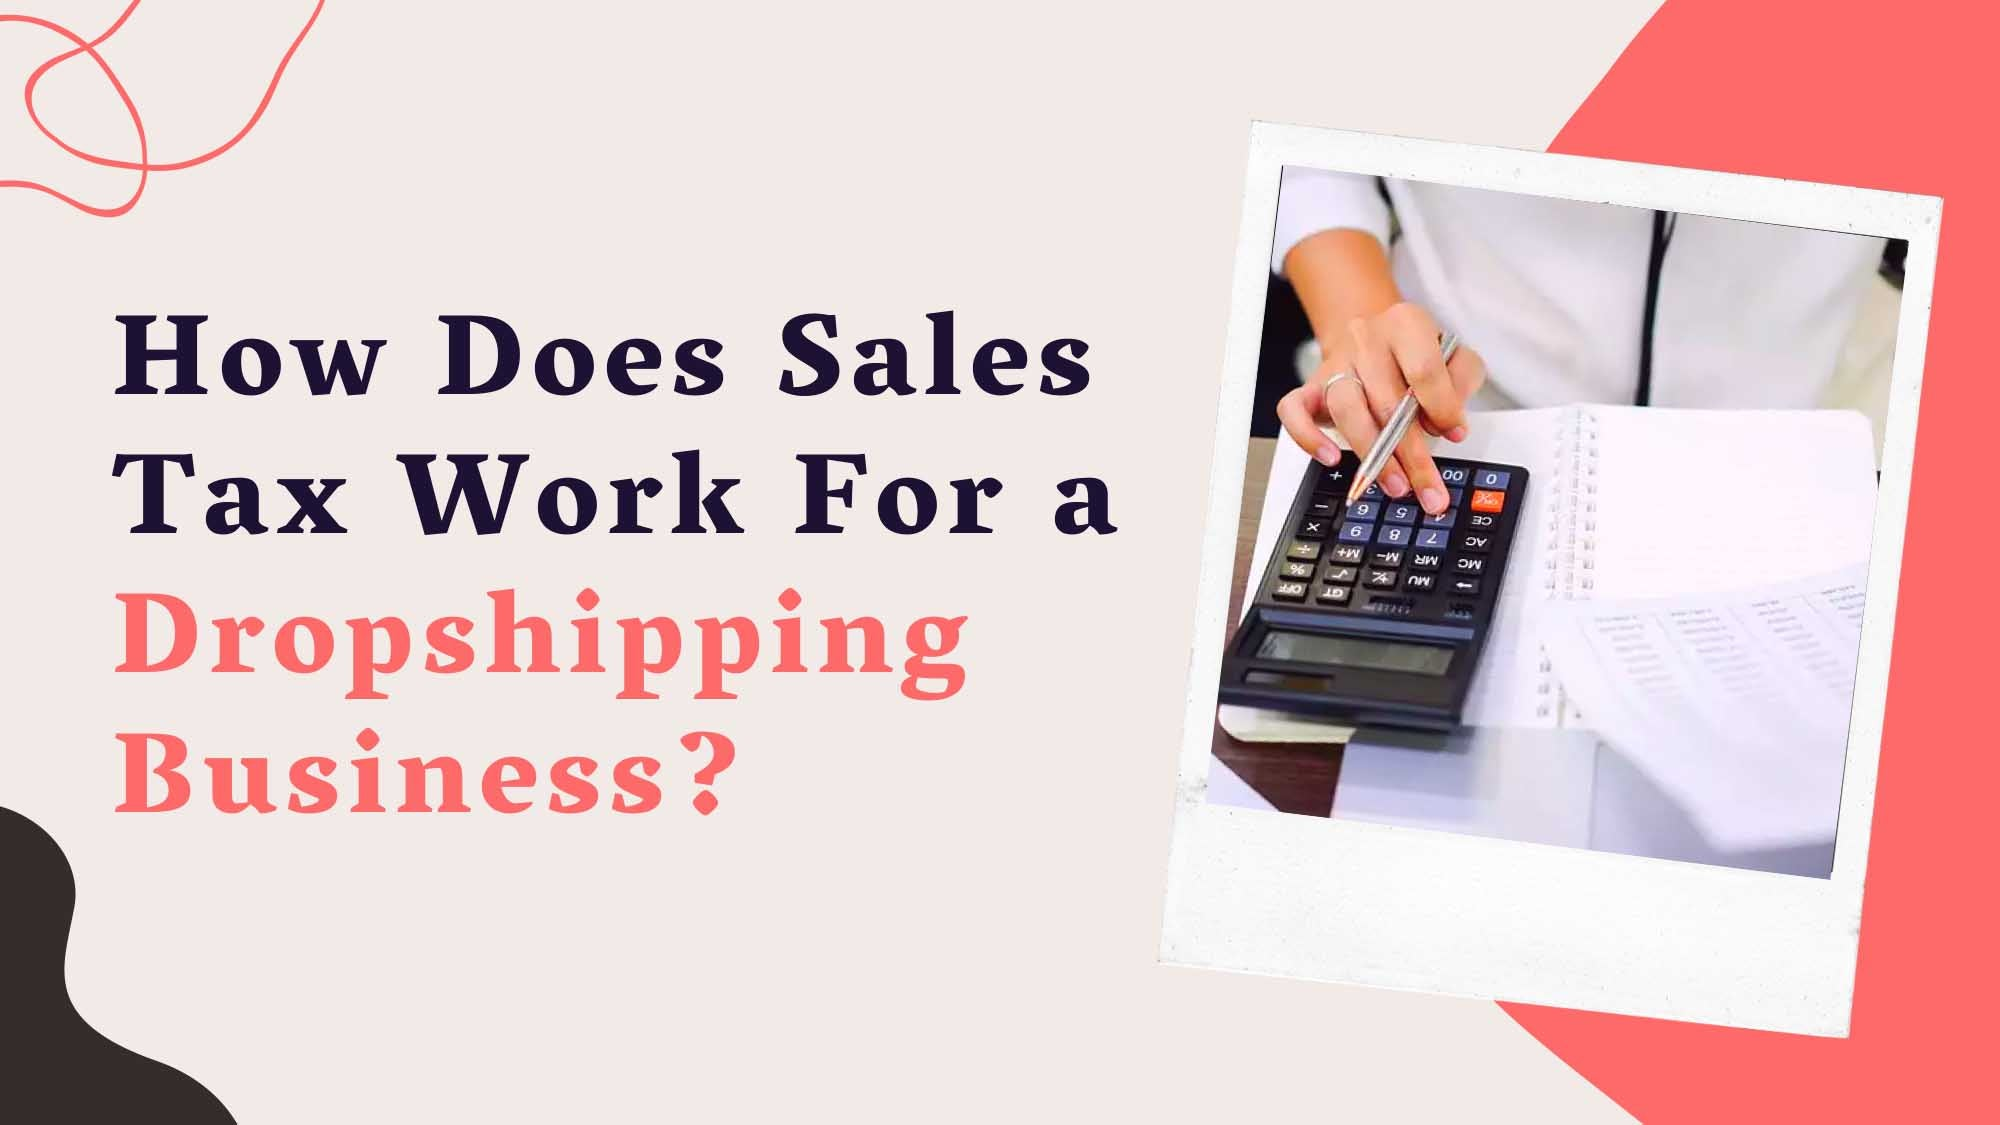 How Does Sales Tax Work For A Dropshipping Business?